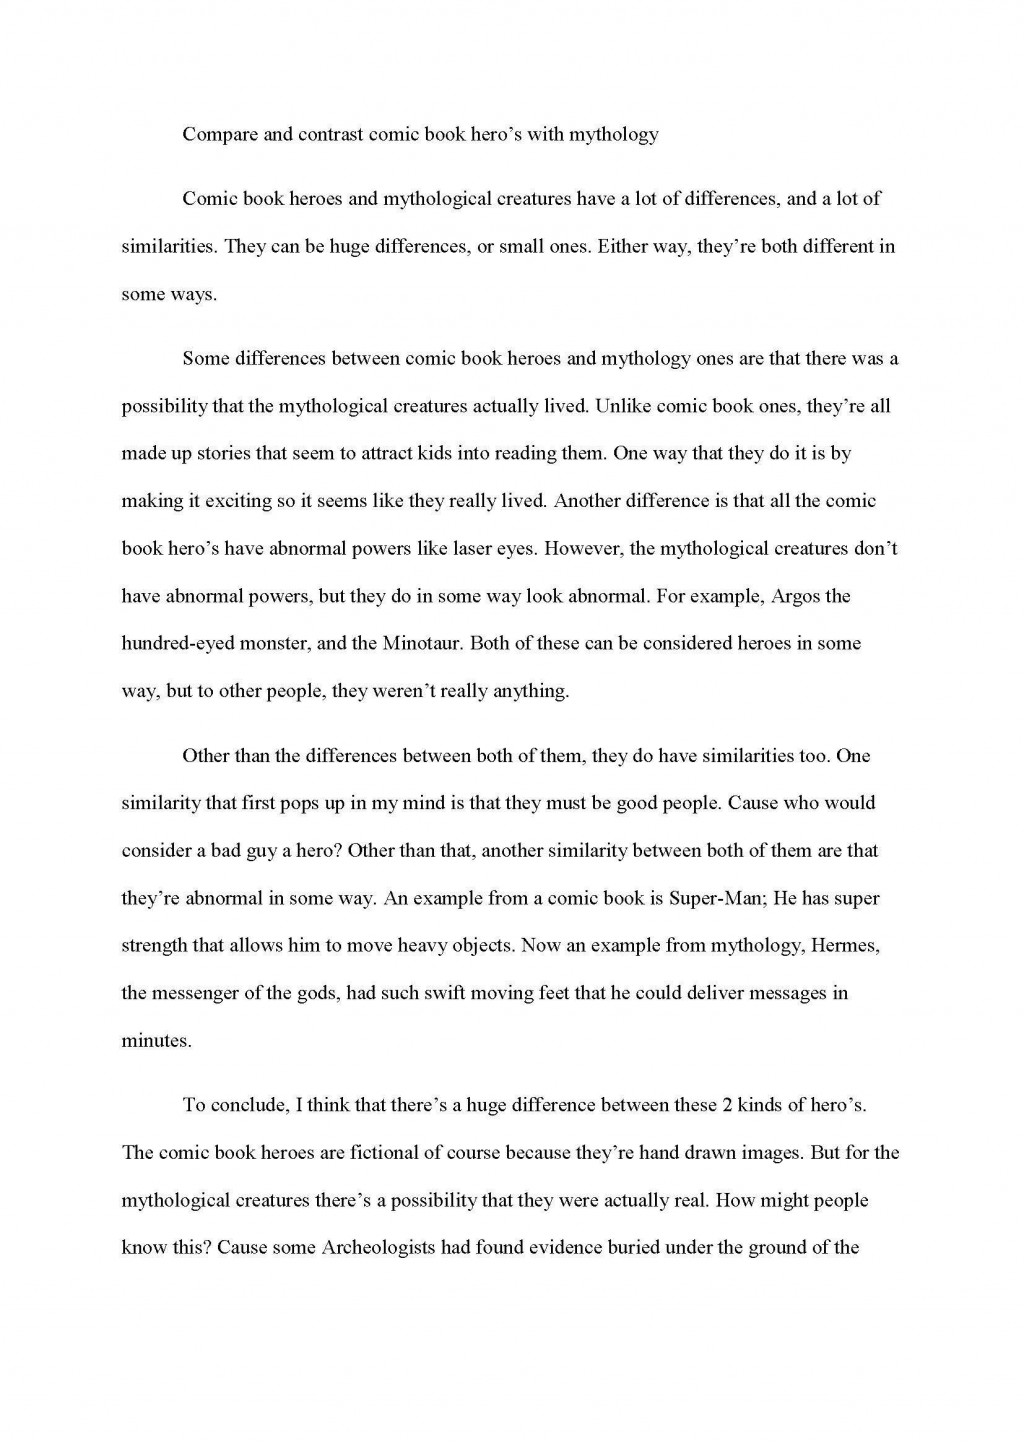 001 Exceptional Compare And Contrast Essay Example College Picture  For Topic Free ComparisonLarge